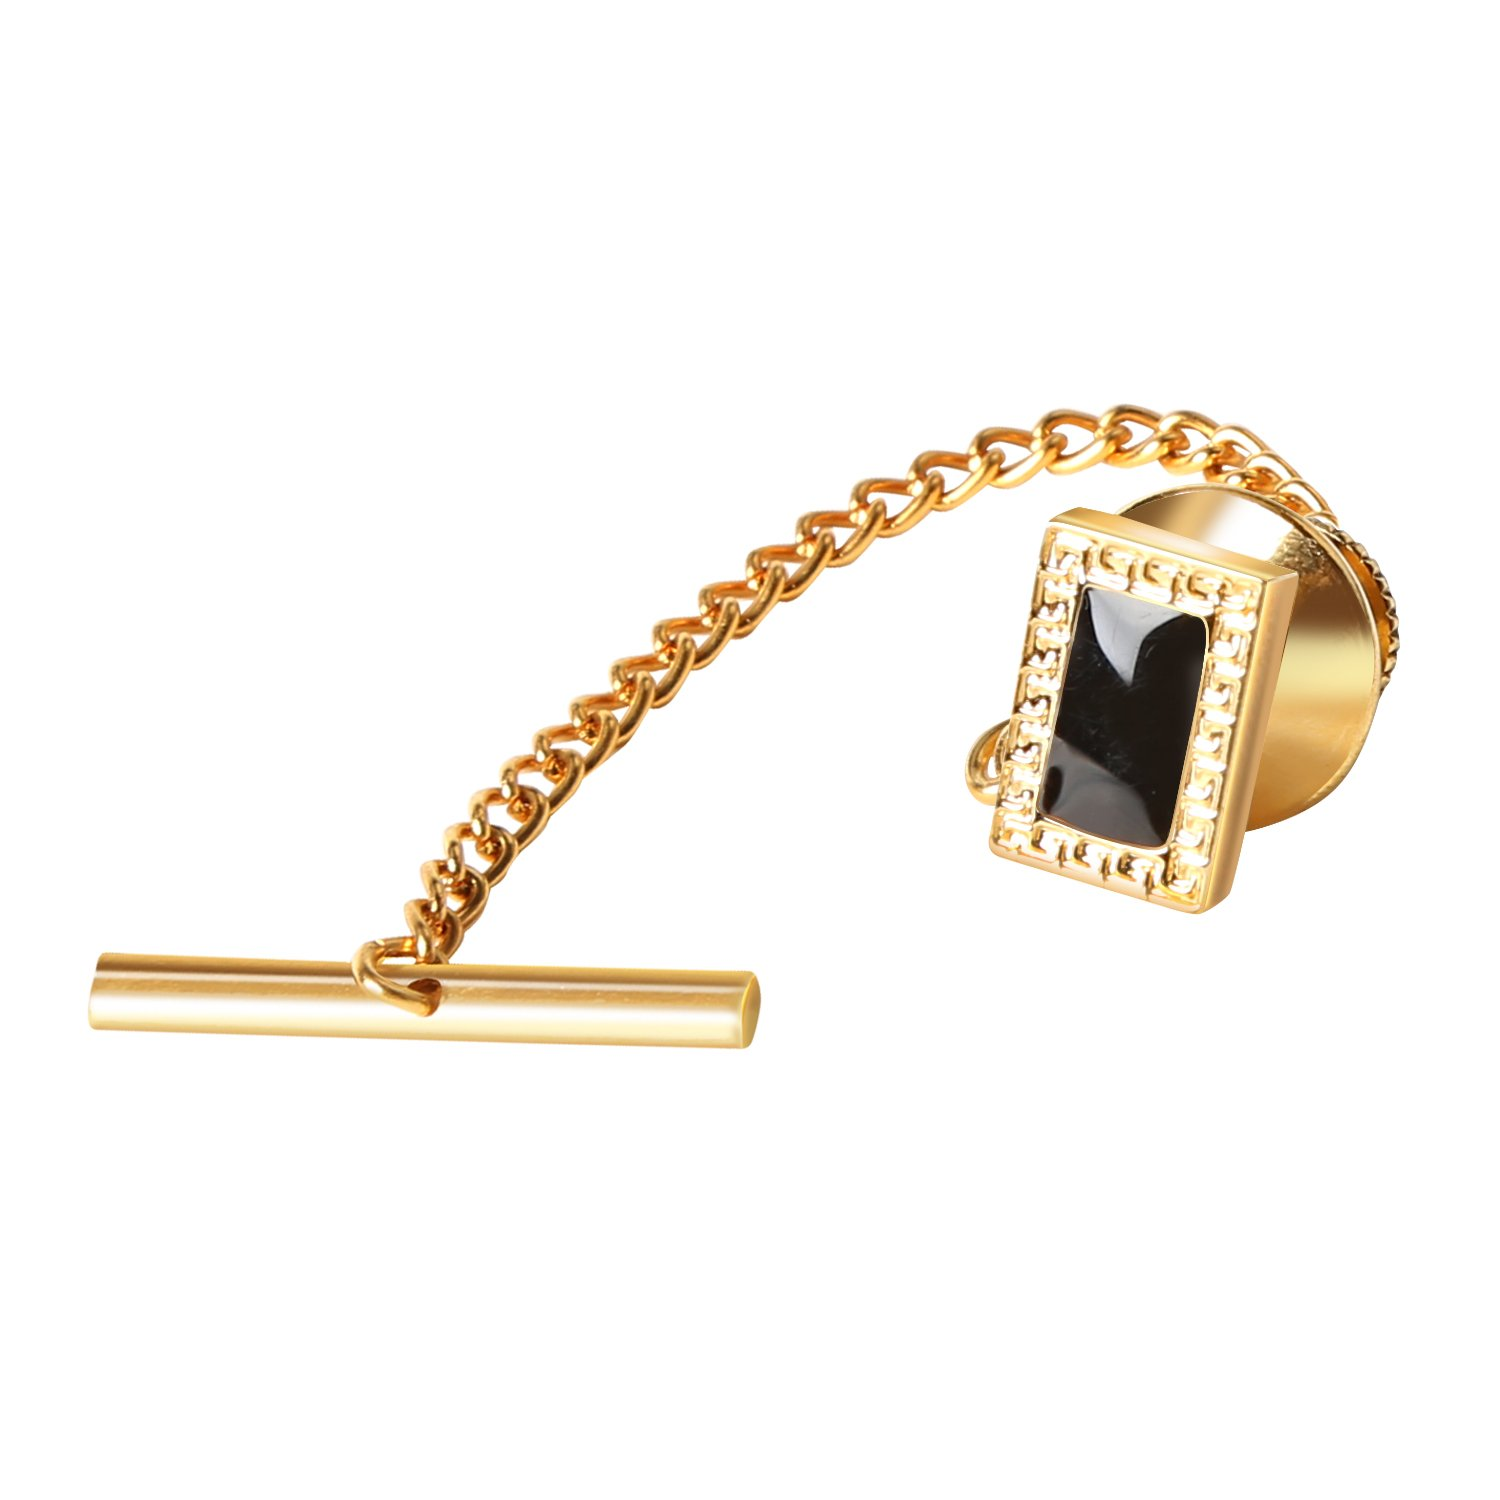 Digabi Men's Jewelry 10mm Black Tie Tack With Chains and Clutch Back Rectangle Tie Clip Button Wedding Business Accessories Golden